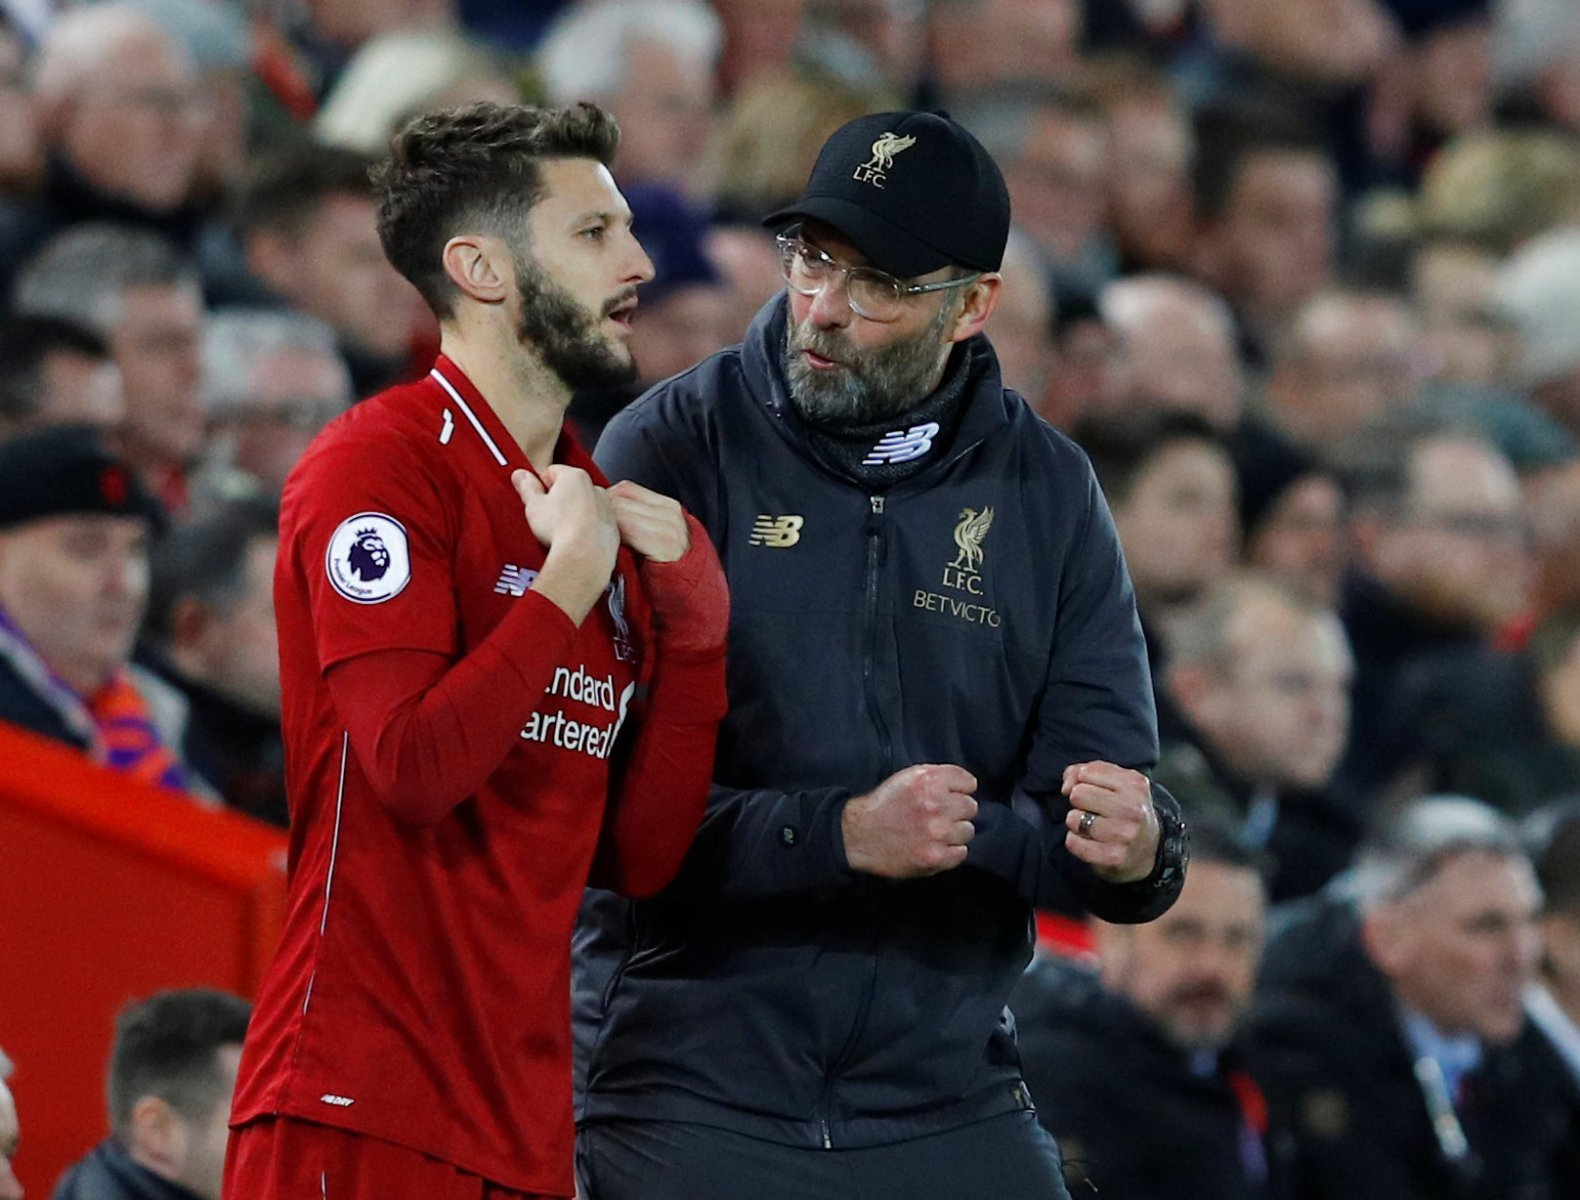 Liverpool: Klopp should give up on failed Adam Lallana project